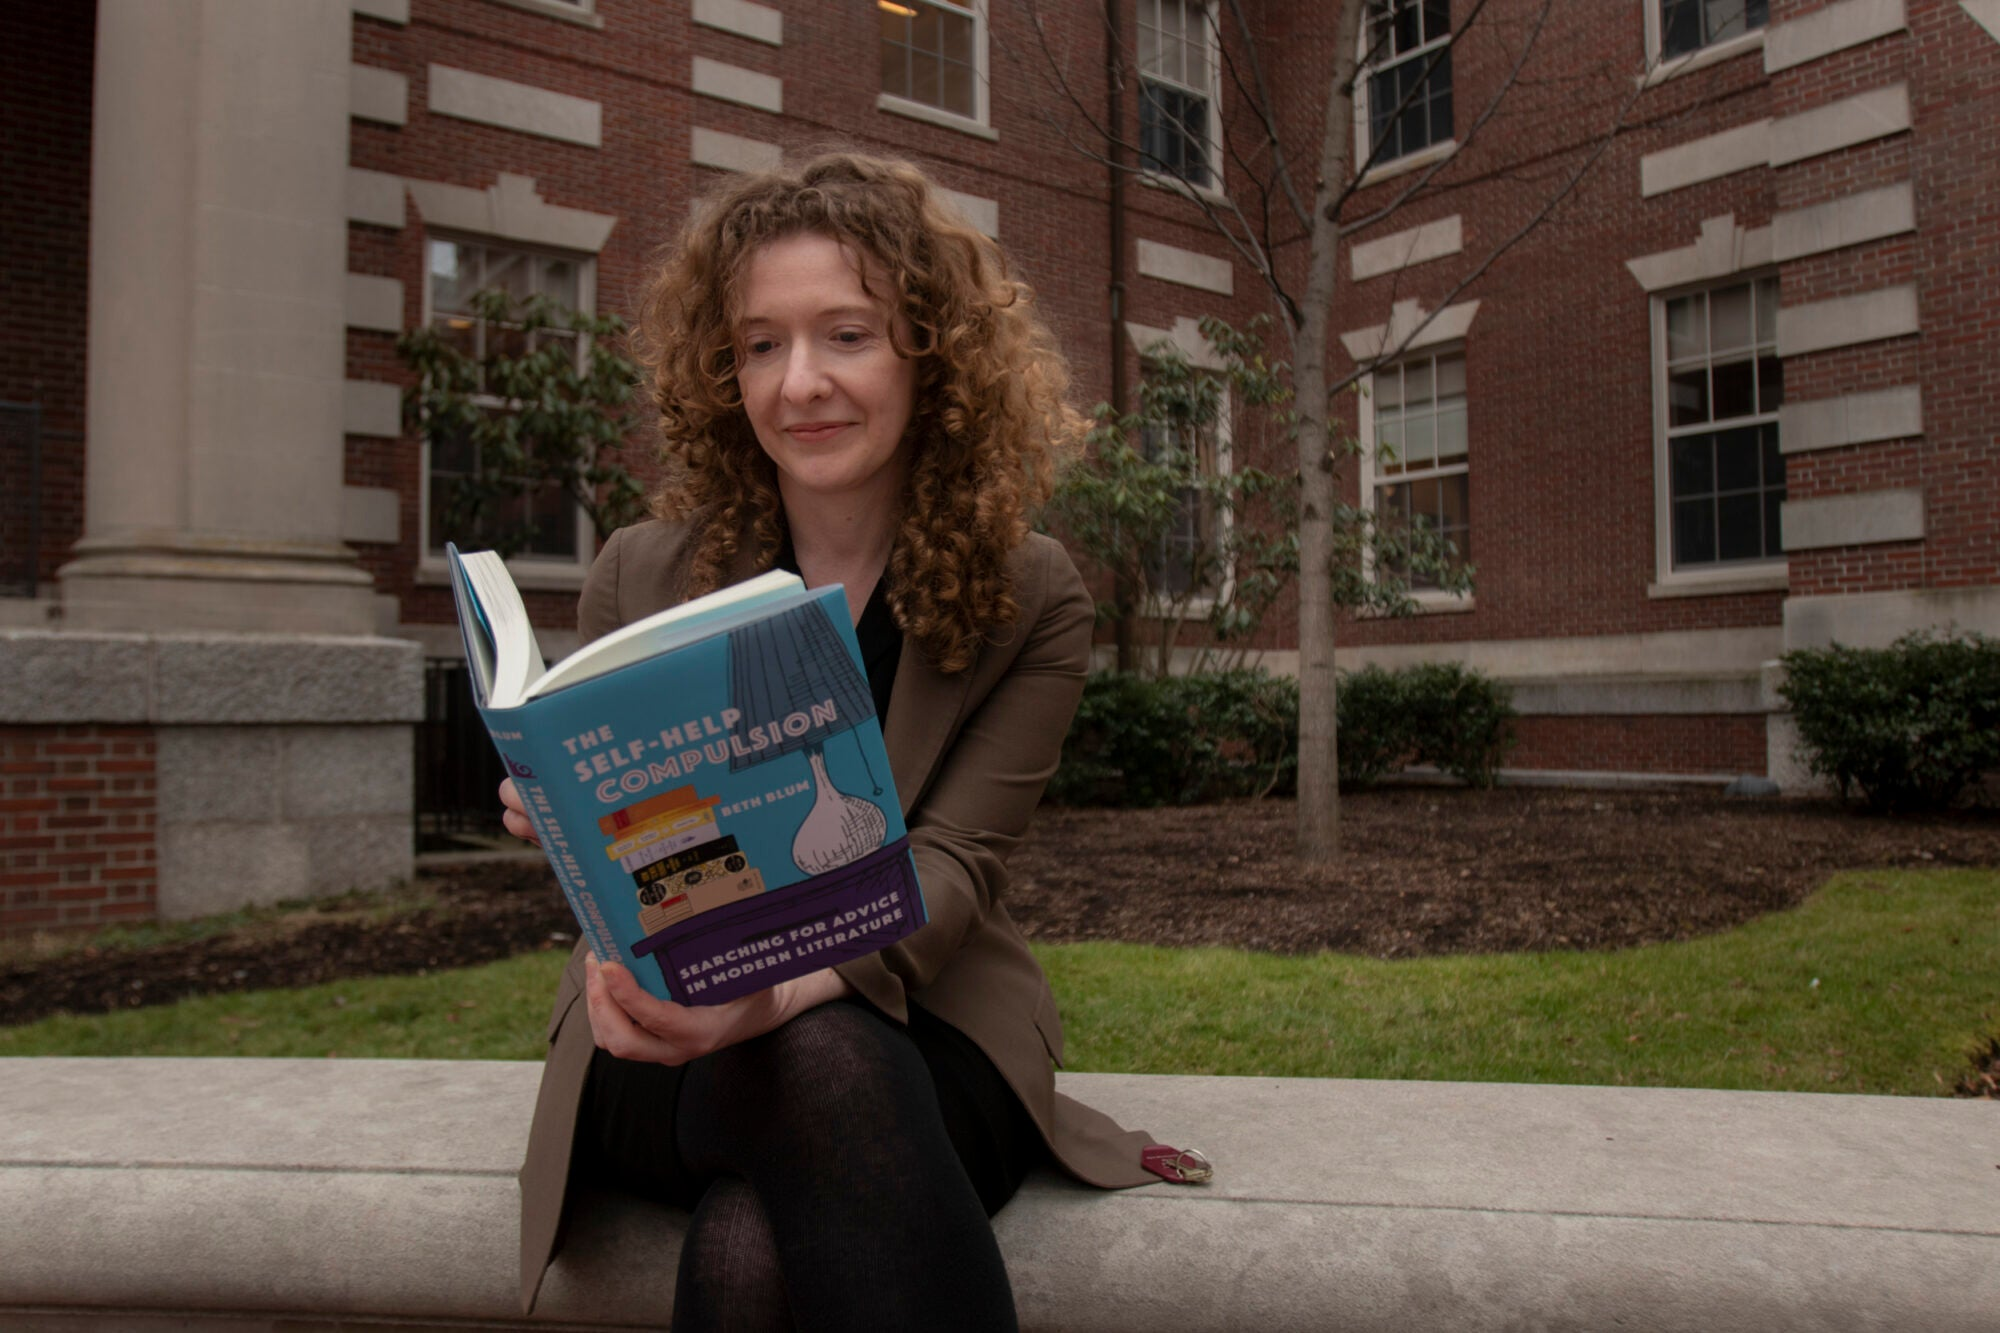 """A woman reads a book outside entitled """"The Self-Help Compulsion"""""""